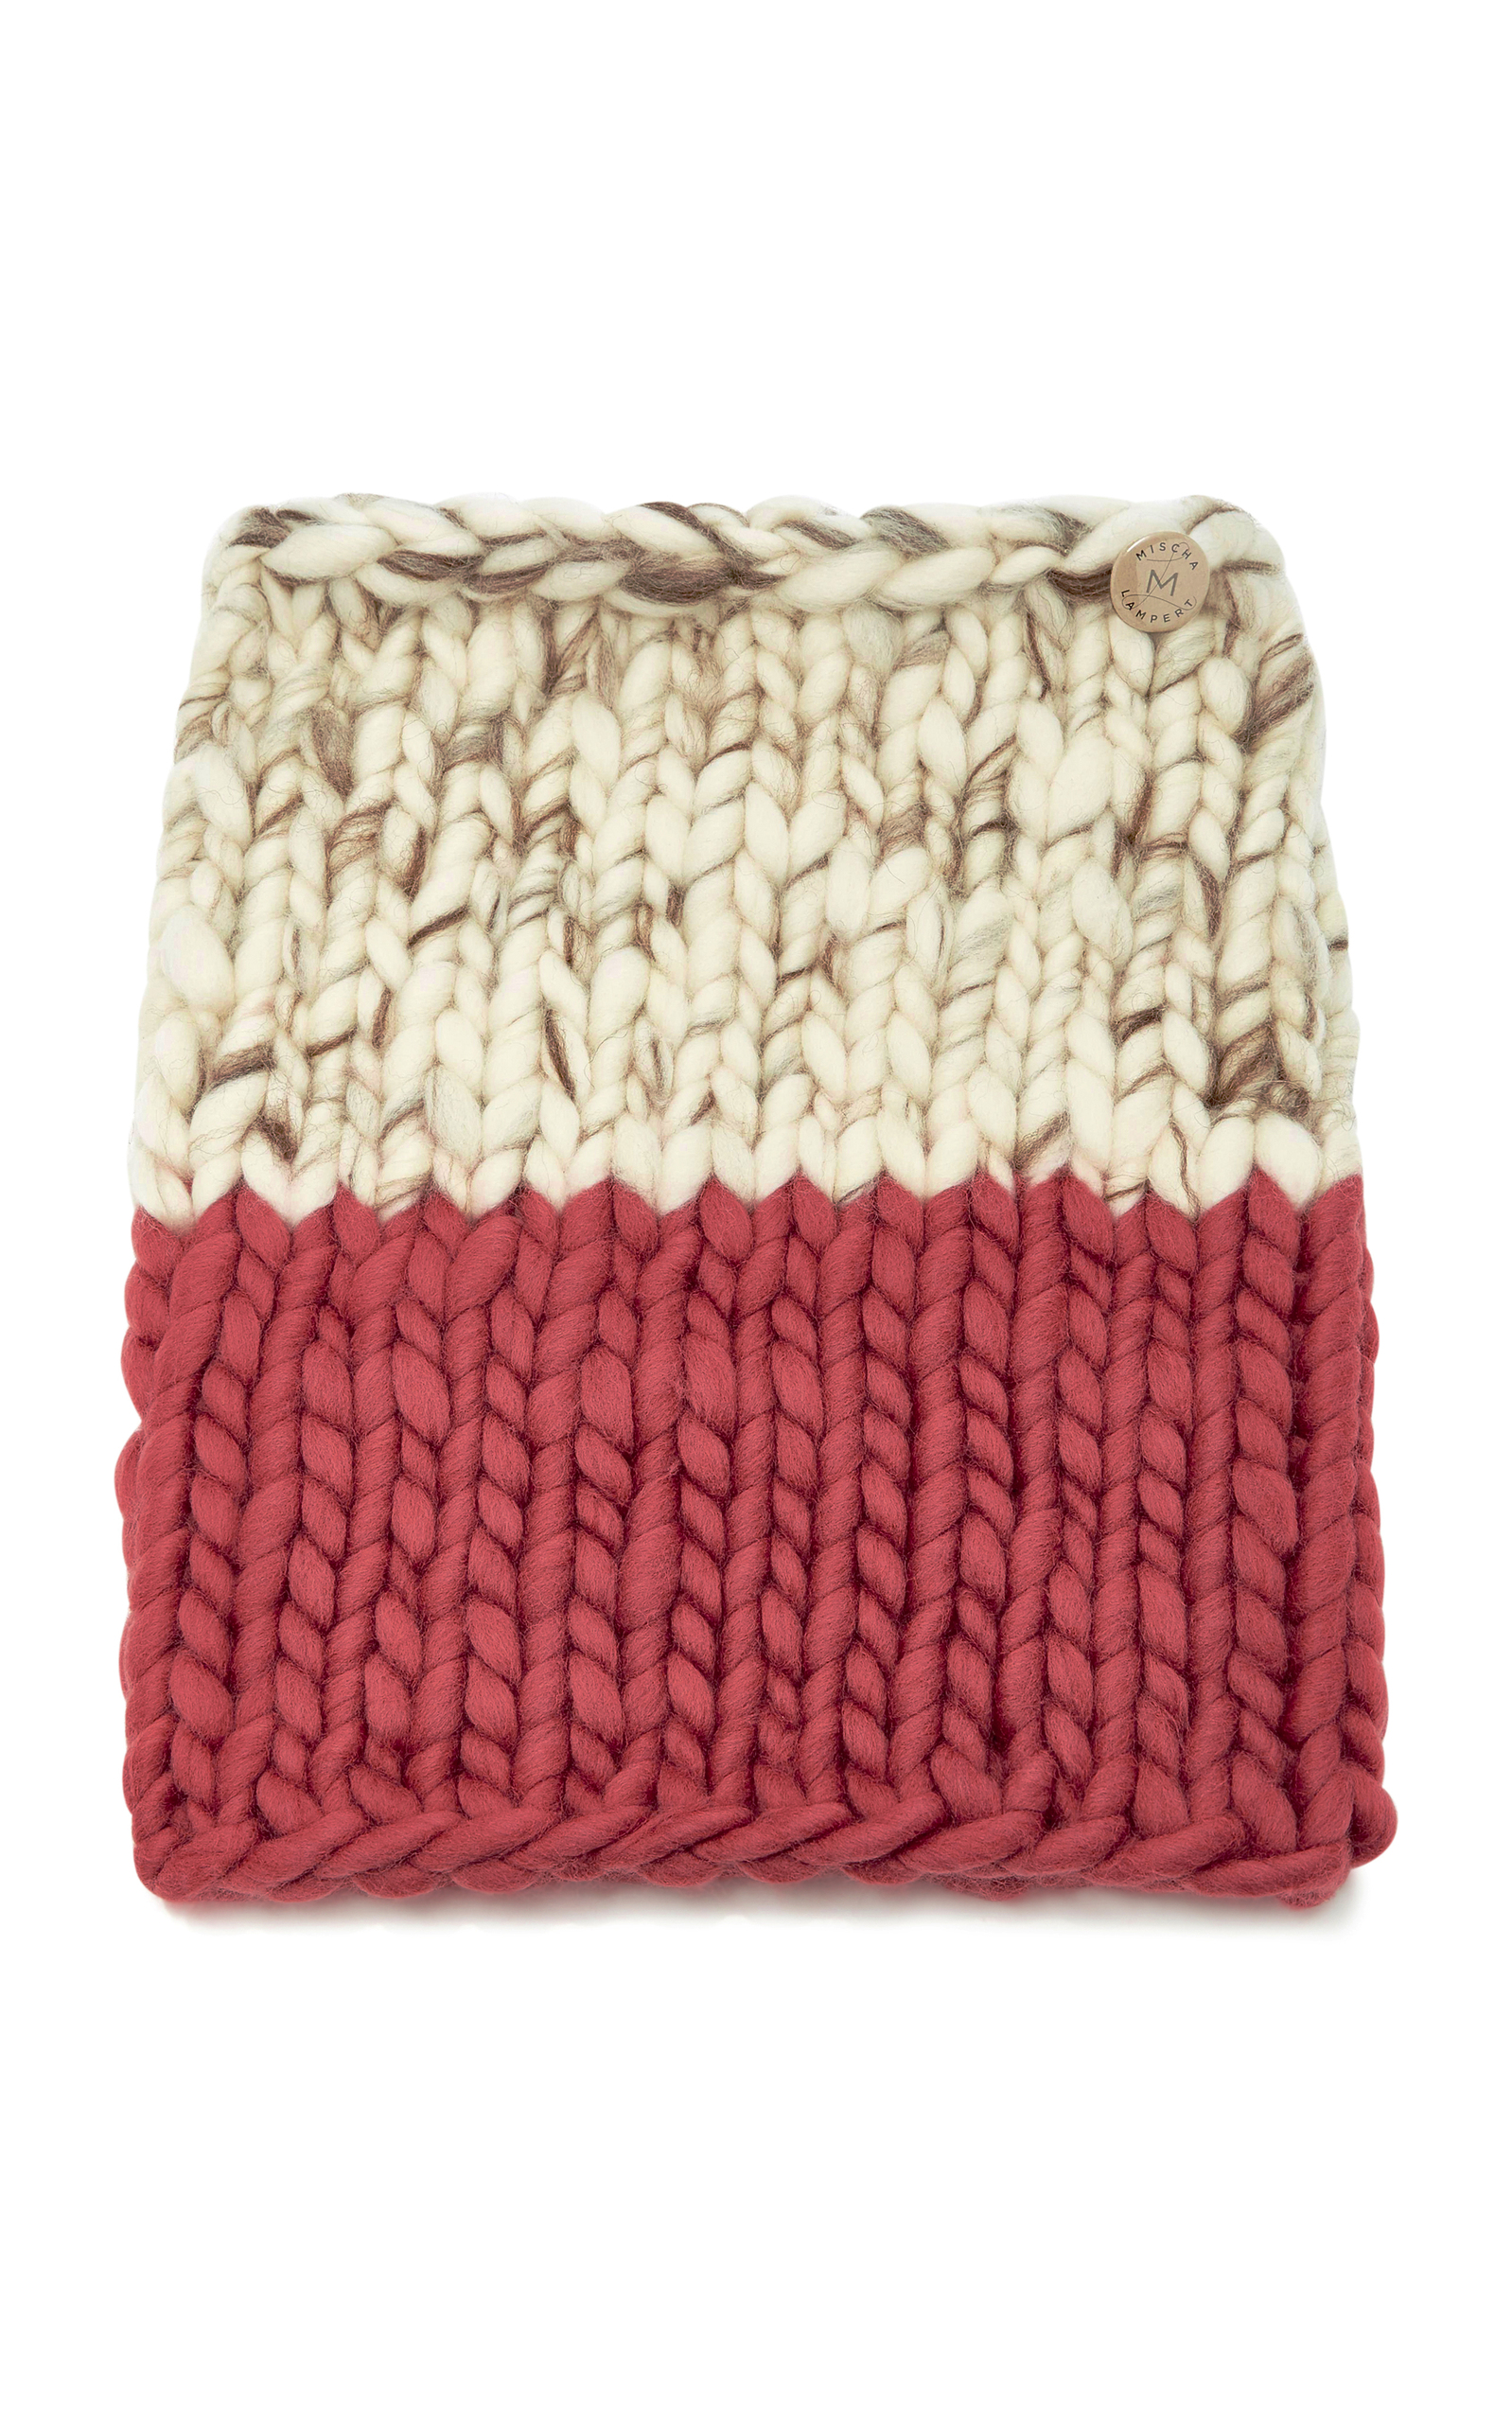 MISCHA LAMPERT REGULAR SNOOD SCARF